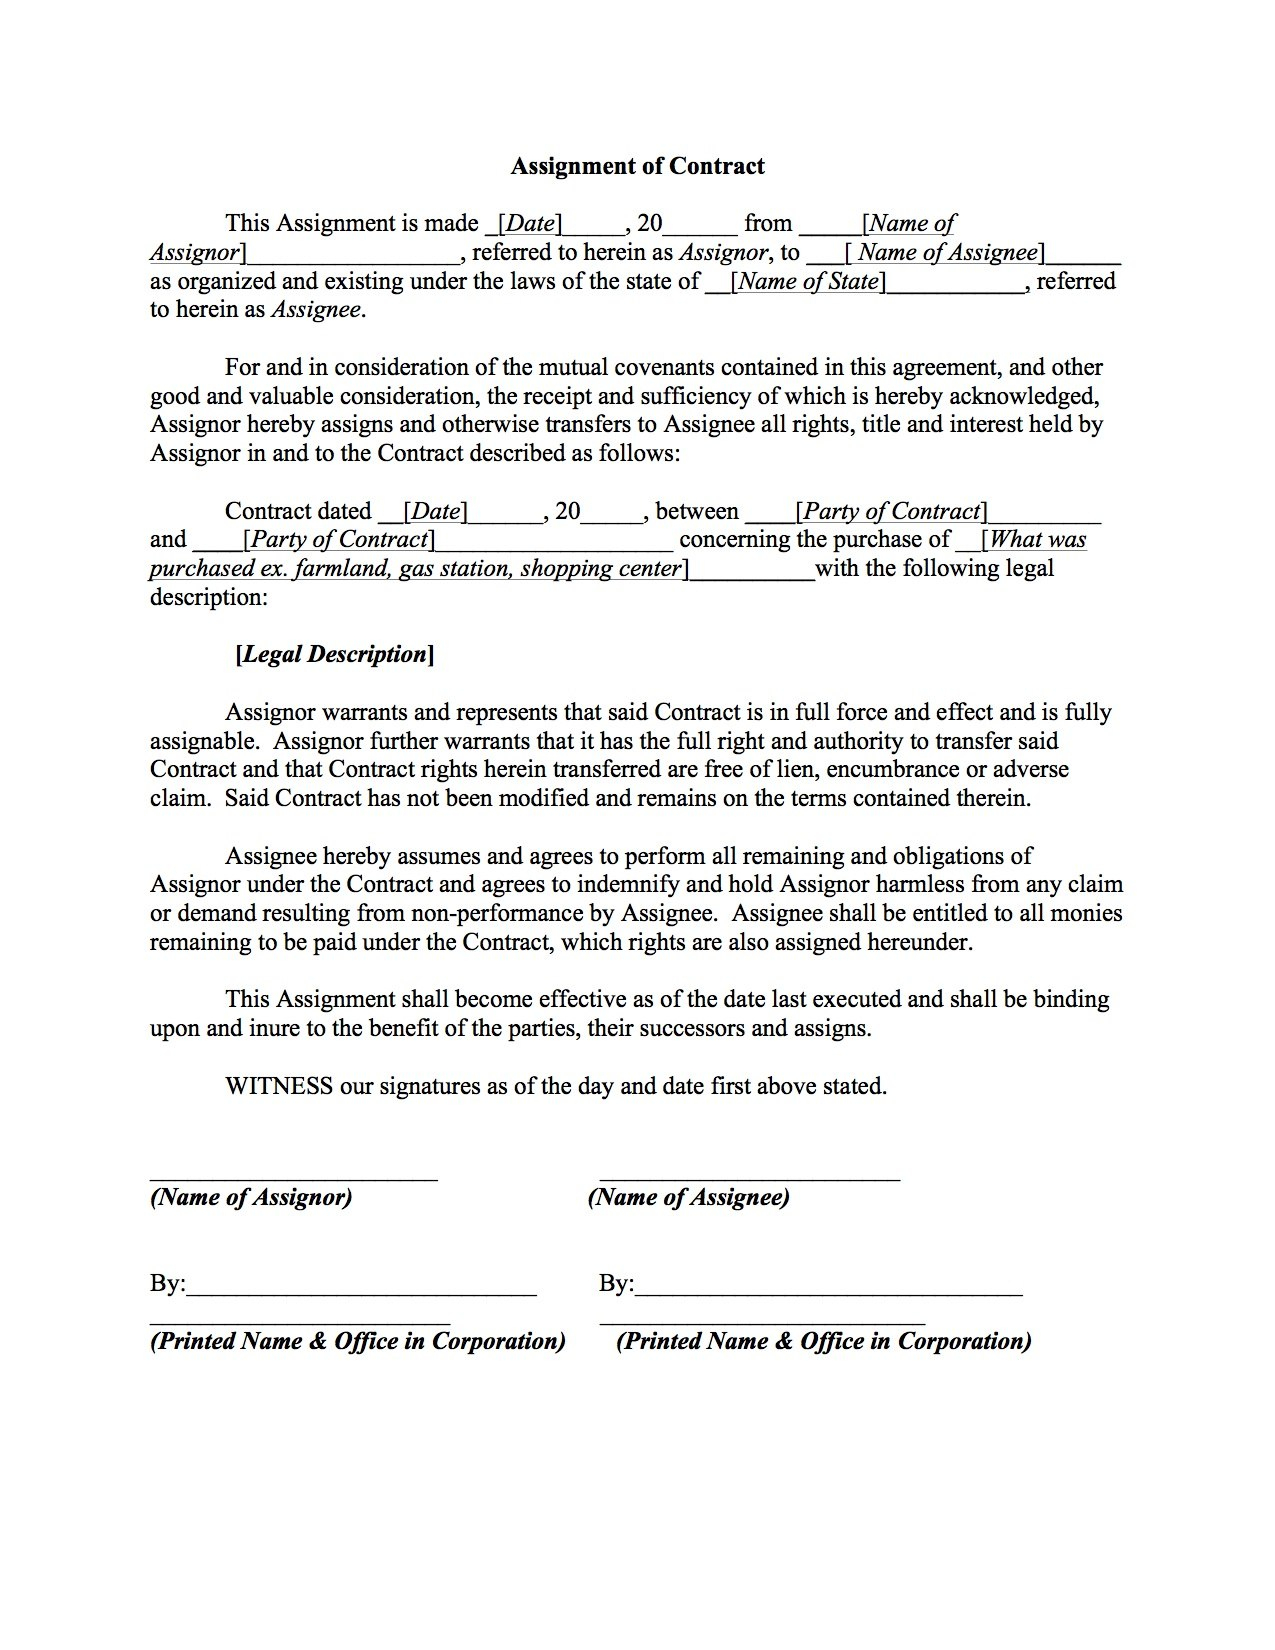 Assignment Of Contract Template – Boardwalk Legal Aids In Contract Assignment Agreement Template